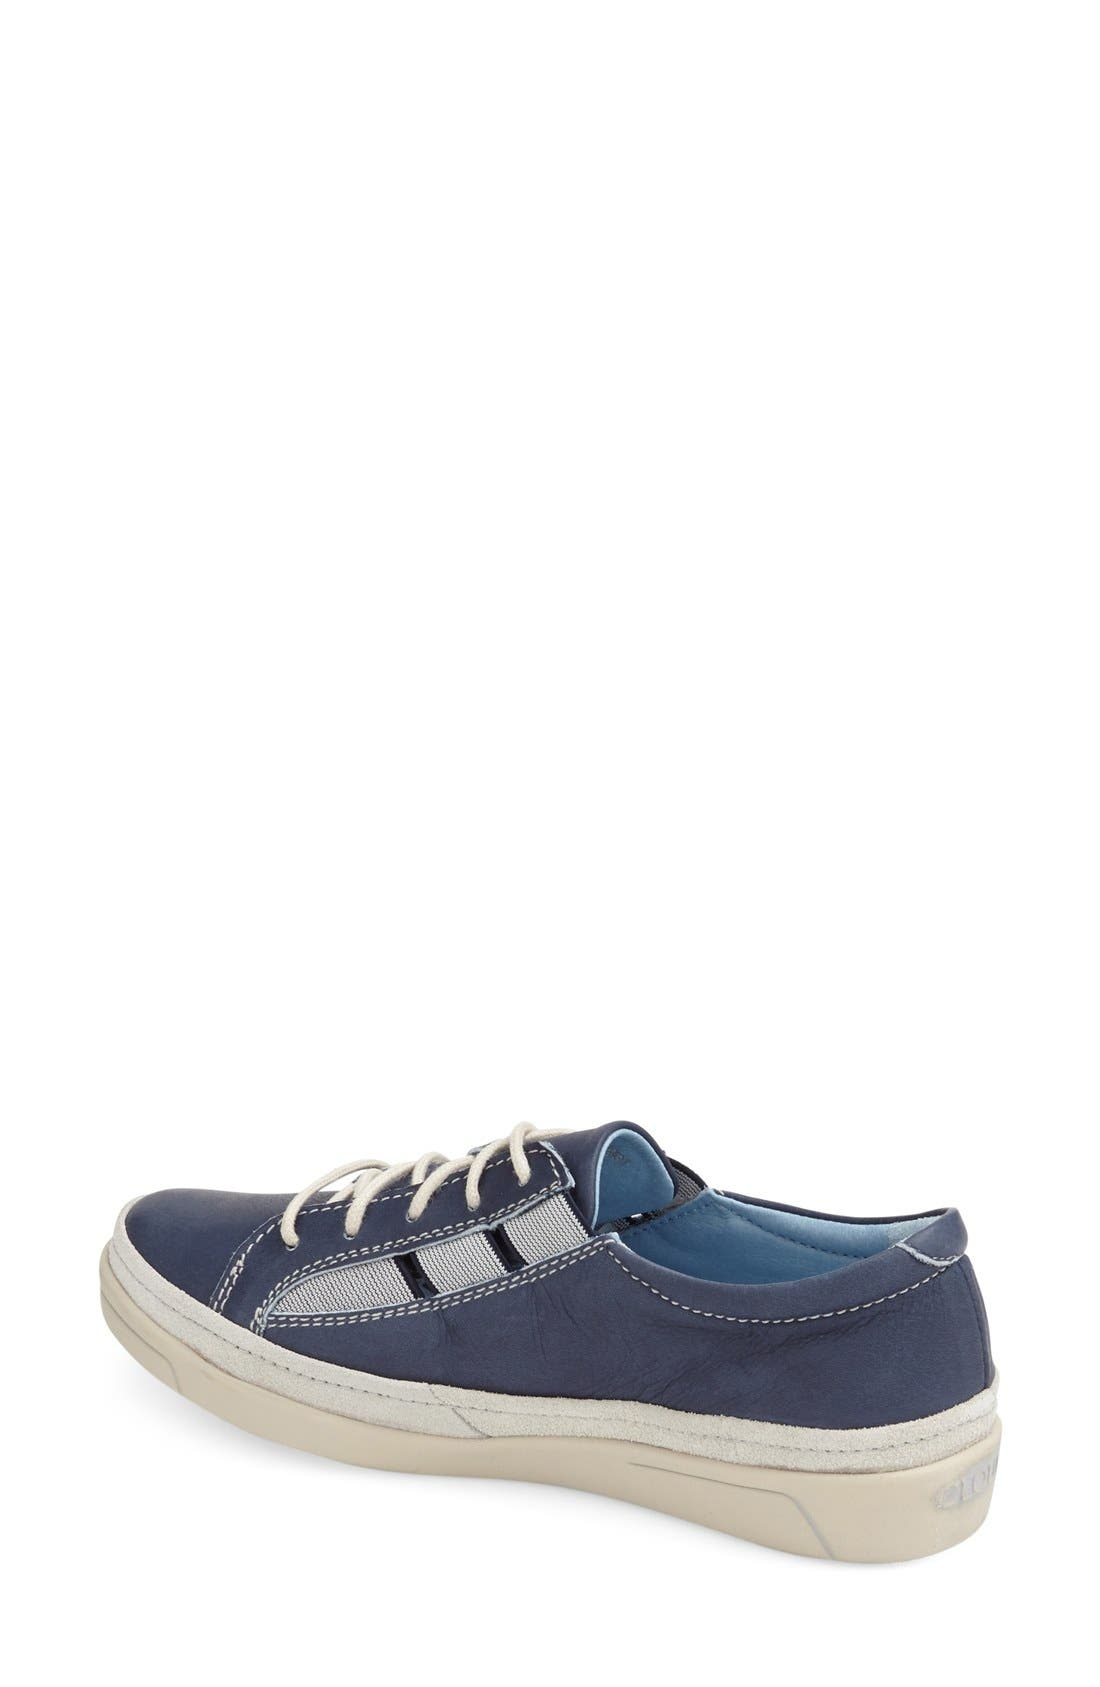 'Amazonas' Leather Sneaker,                             Alternate thumbnail 2, color,                             BLUE LEATHER